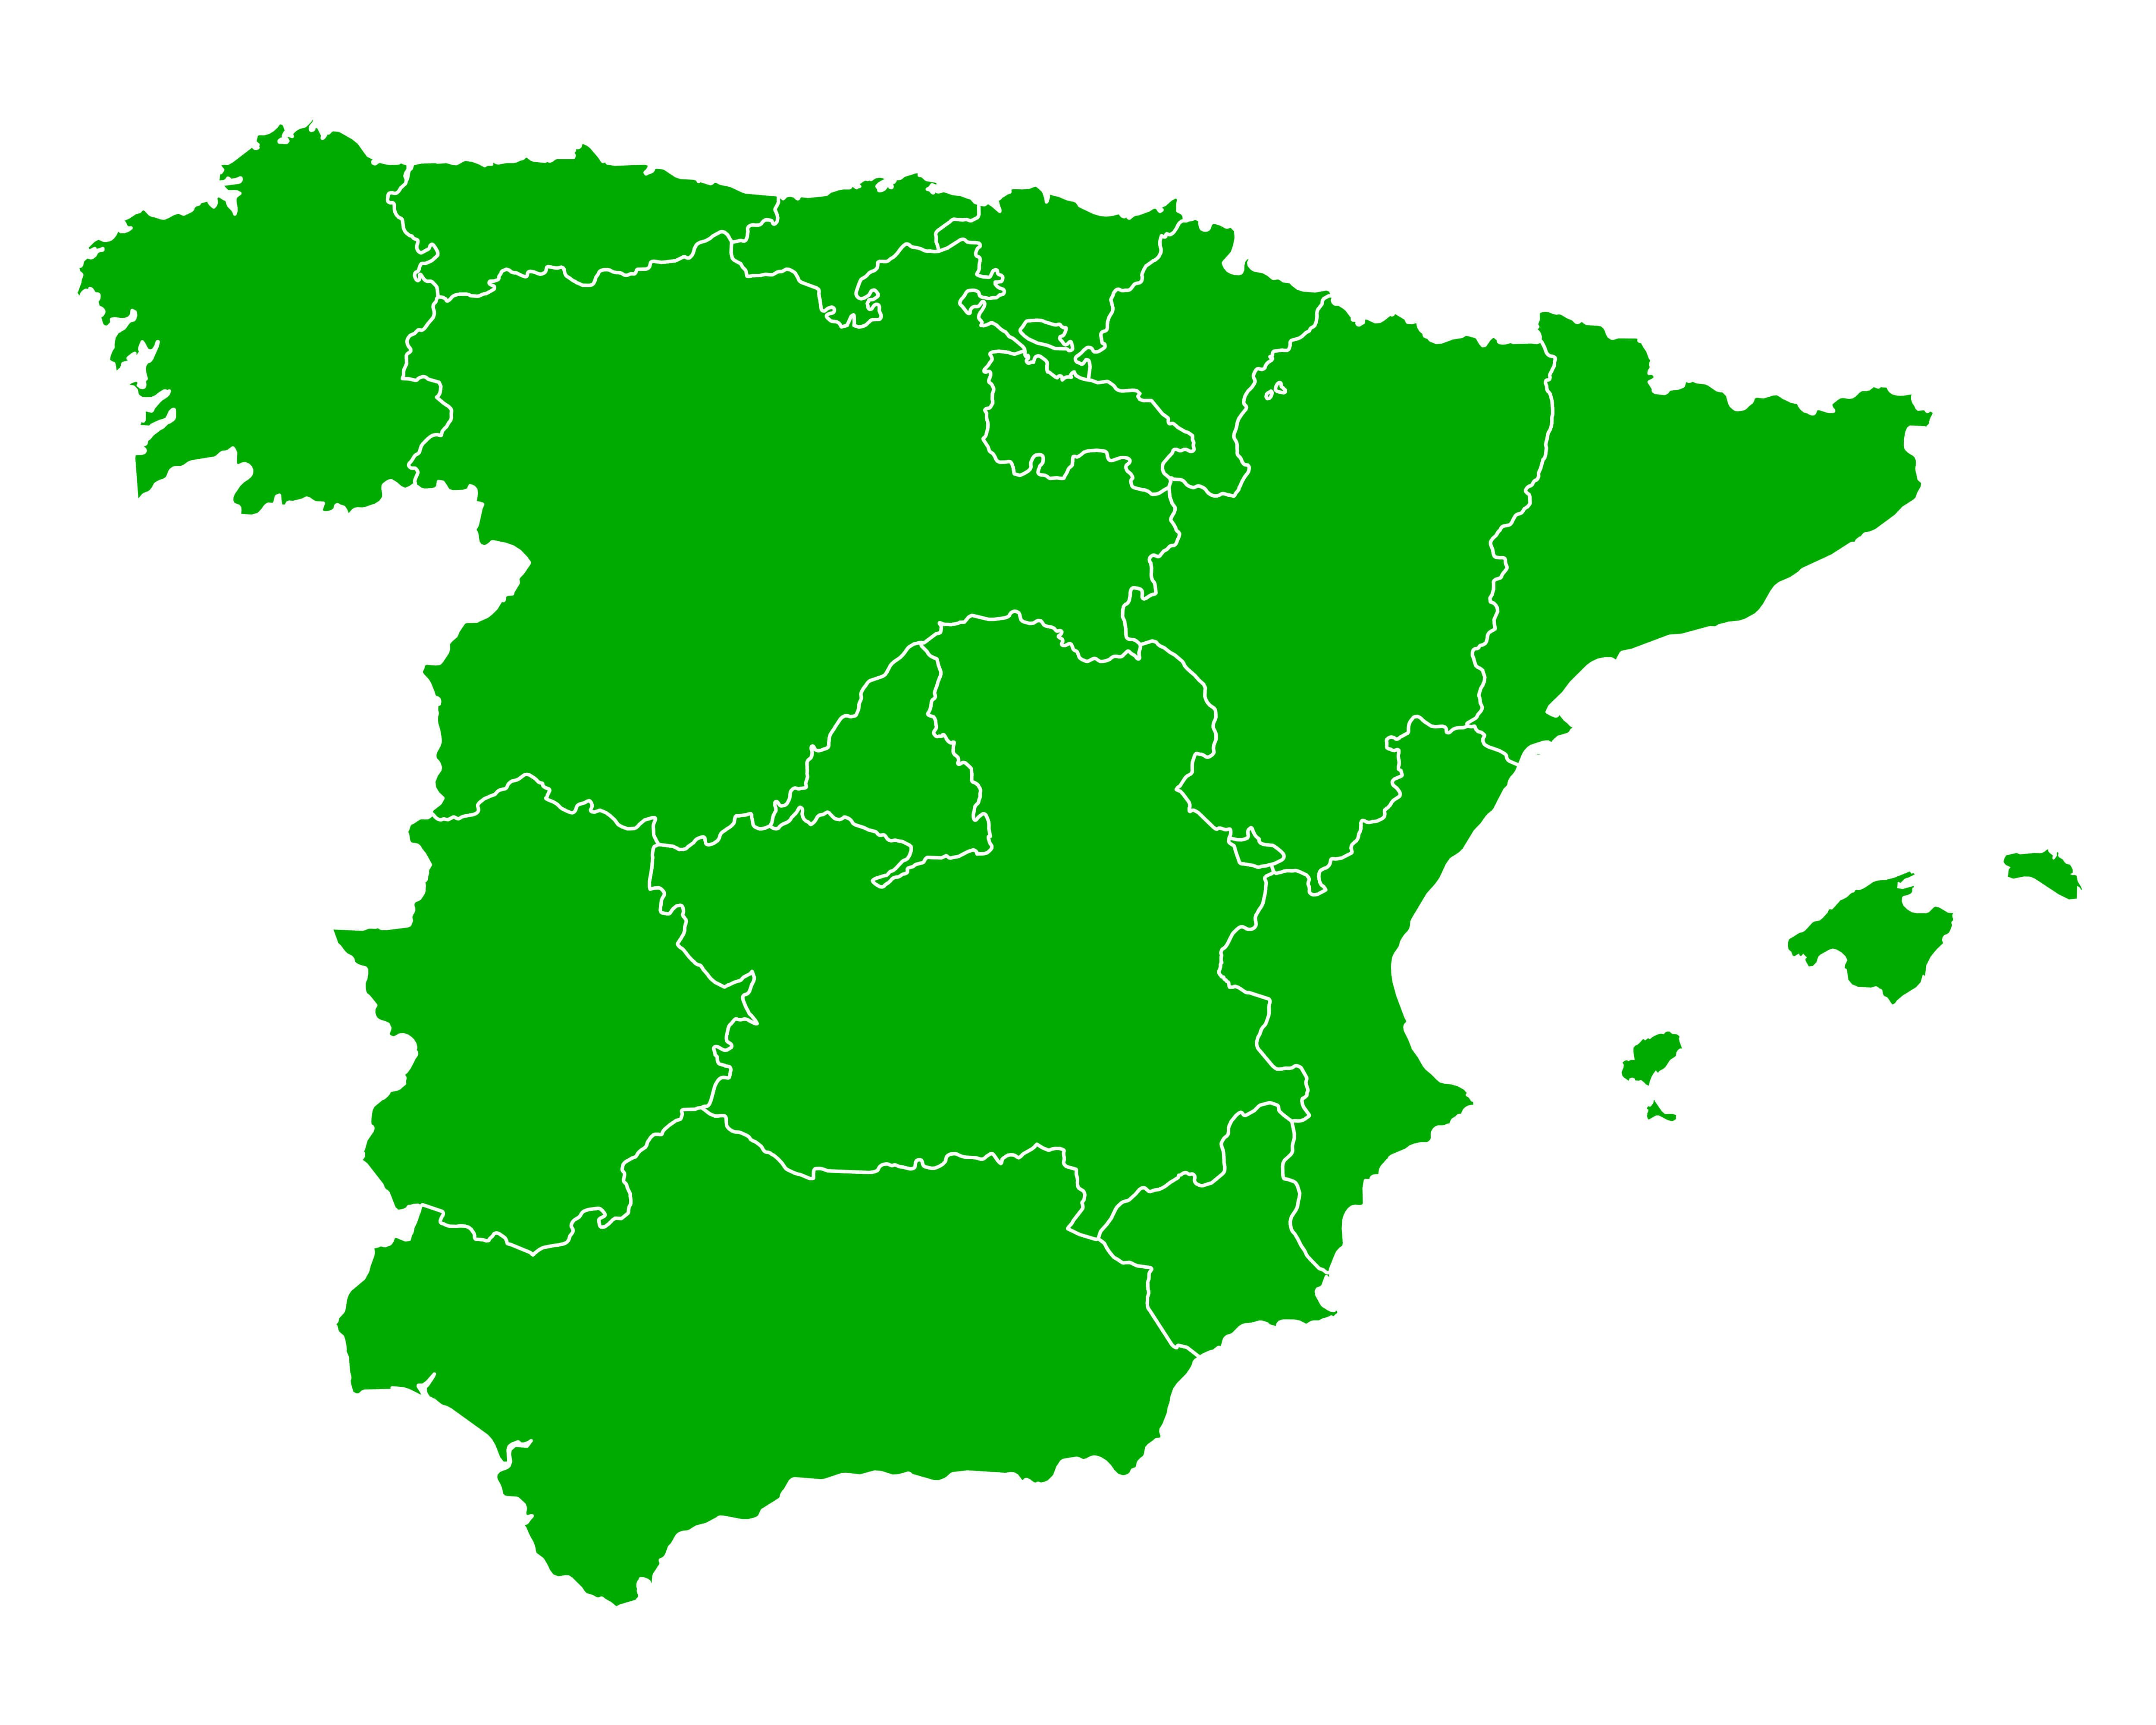 Blank Map Of Spain Regions.Map Of Spain Guide Of The World